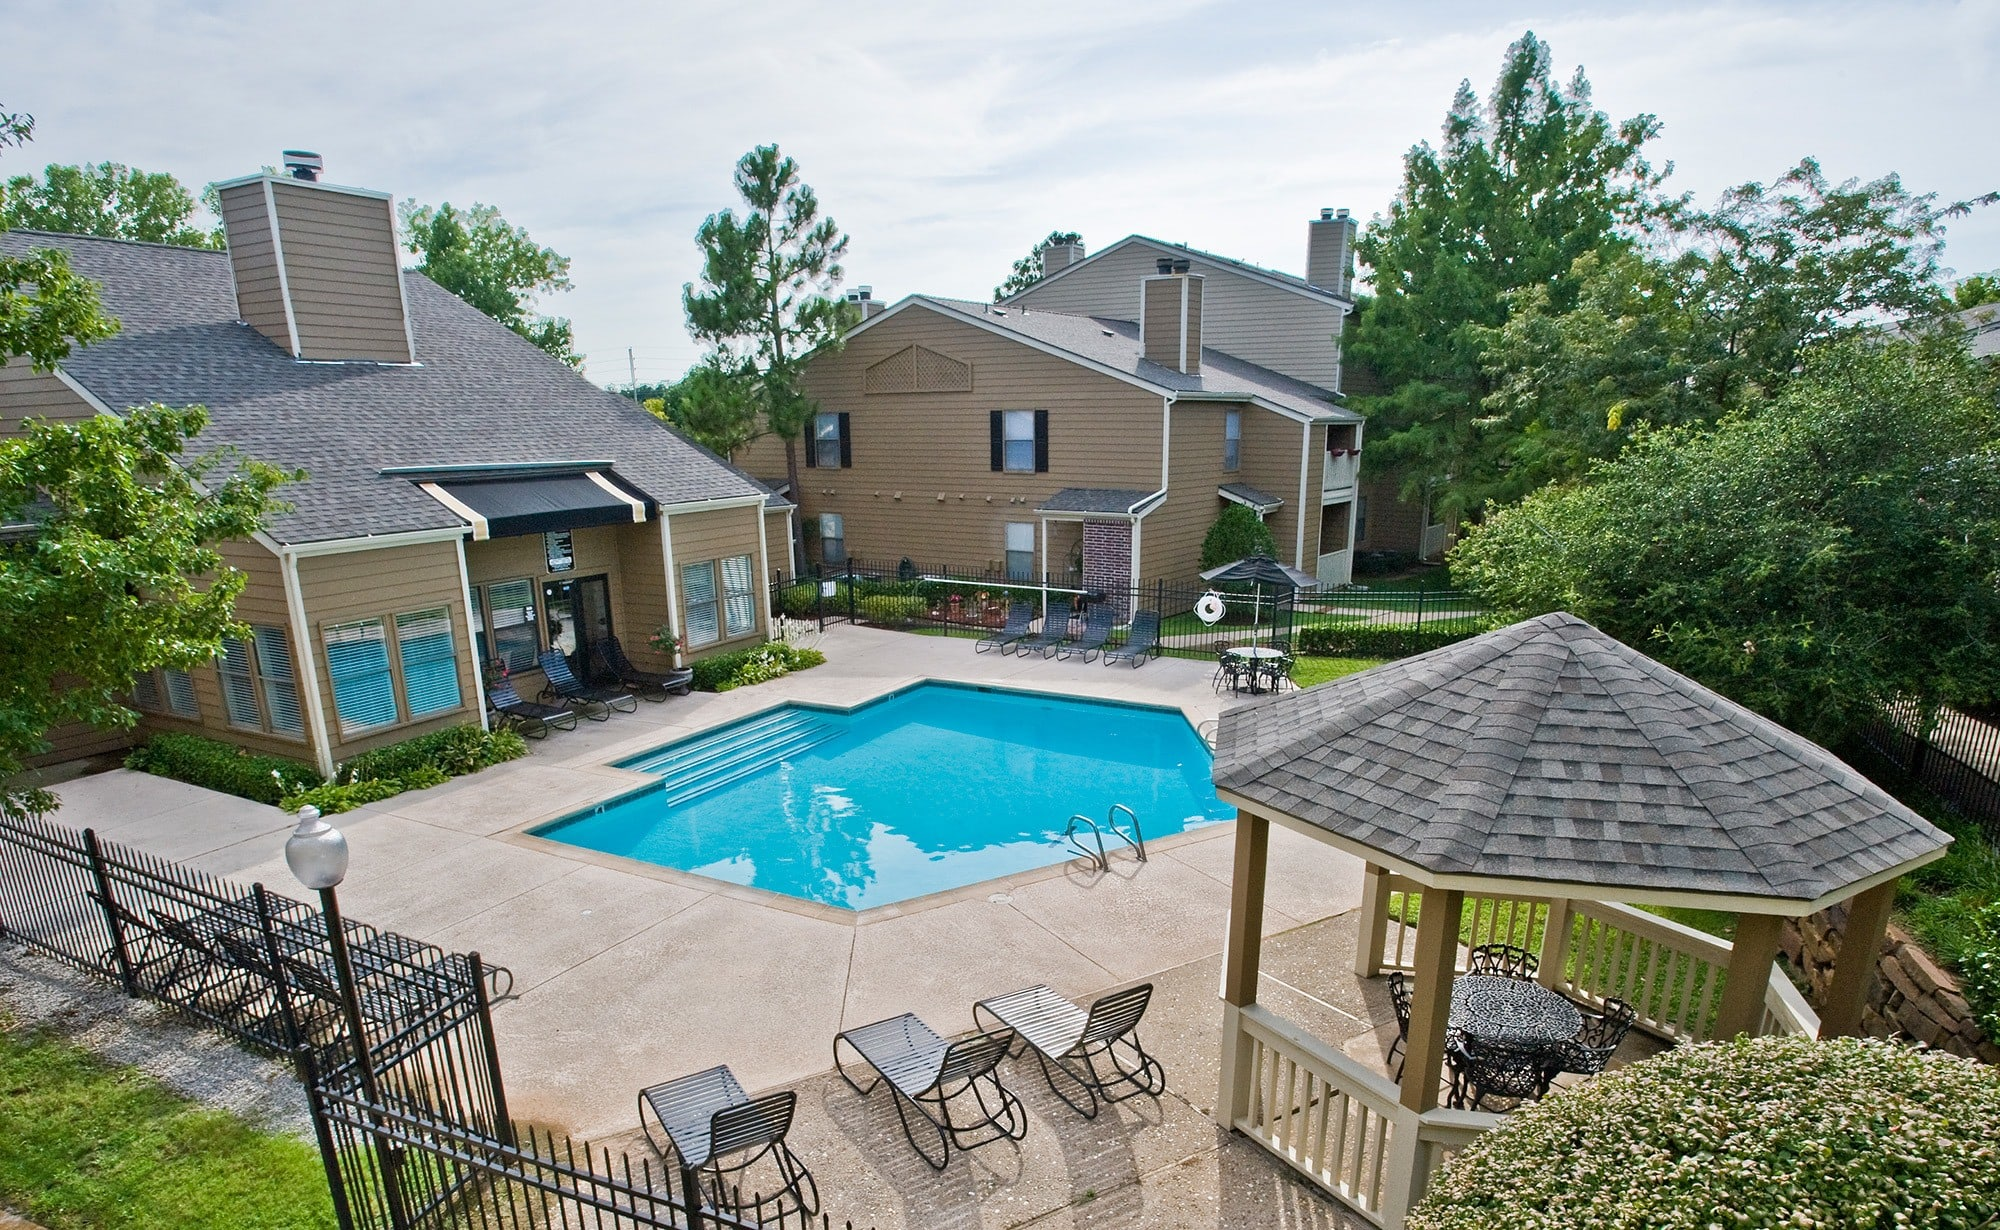 Swimming pool view at apartments in Tulsa